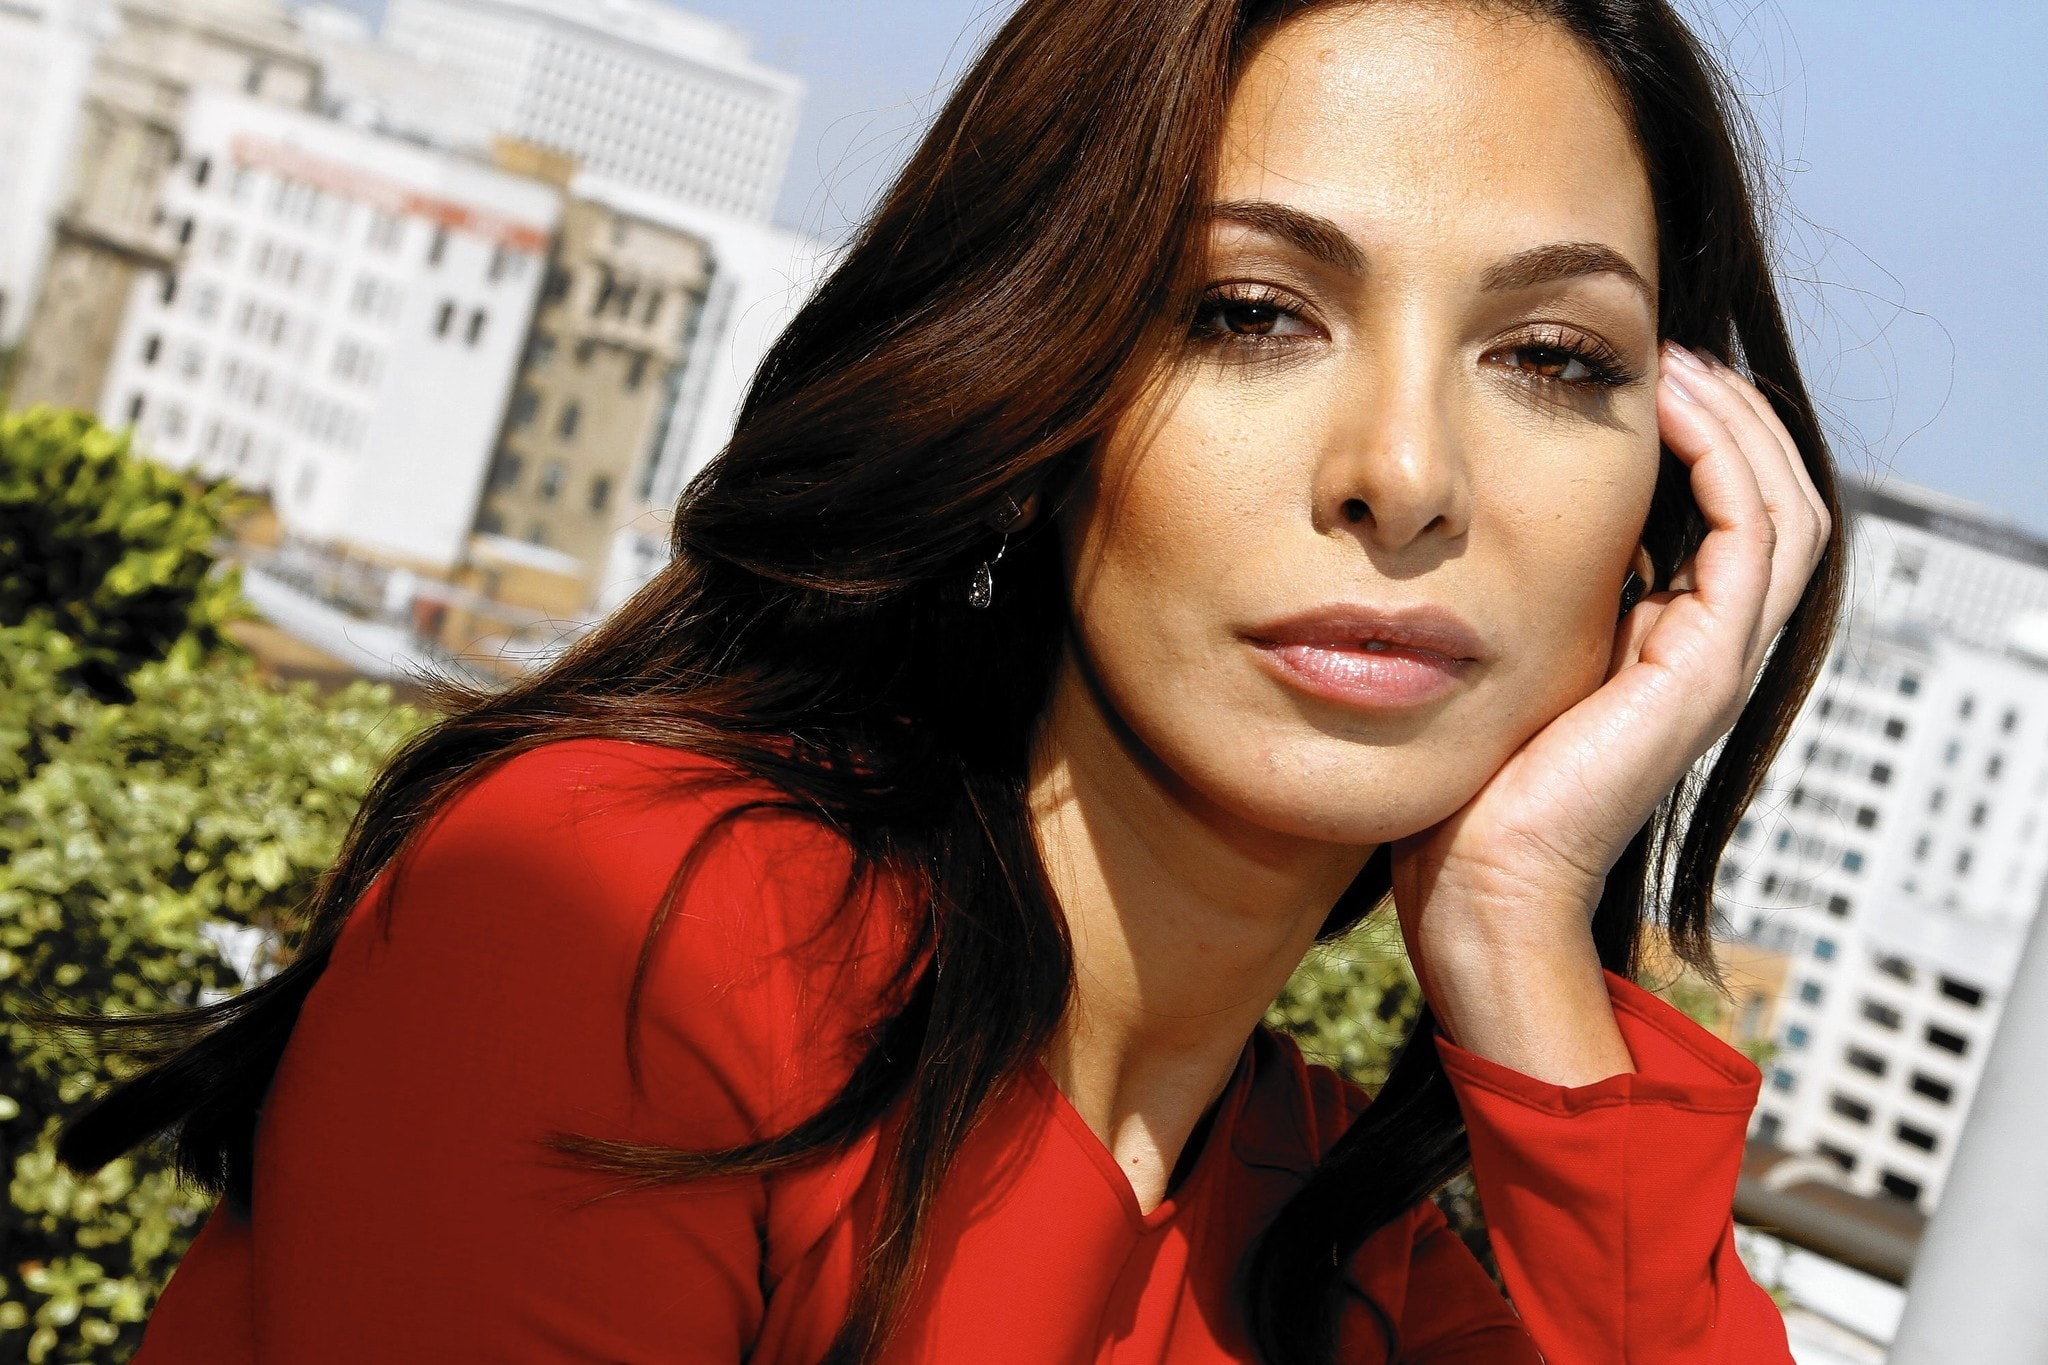 Moran Atias Background